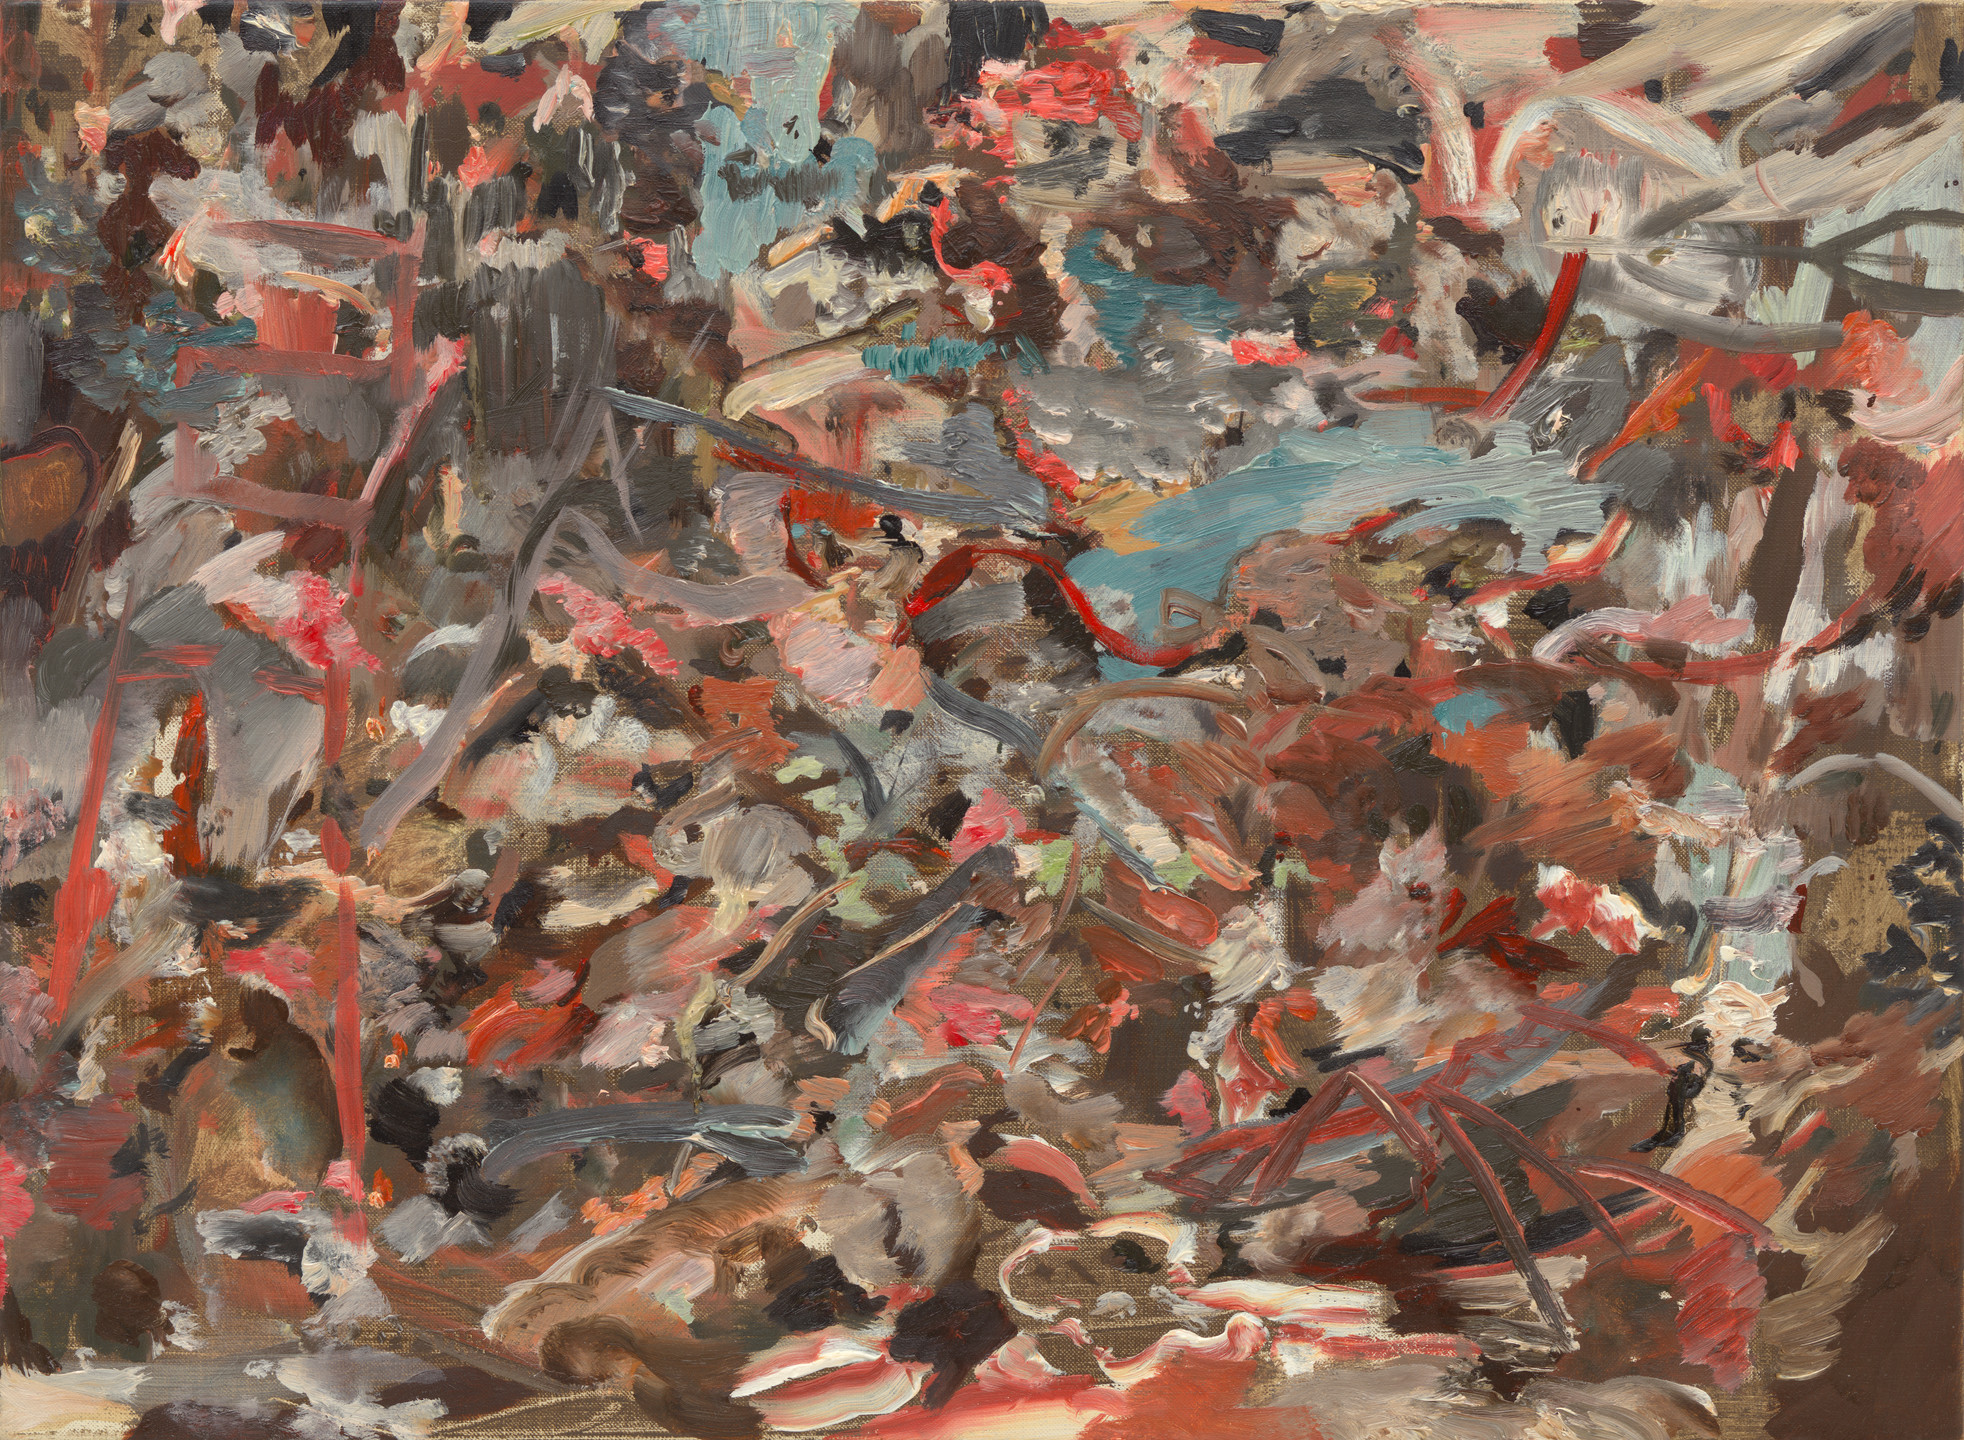 Cecily Brown. Untitled. 2010